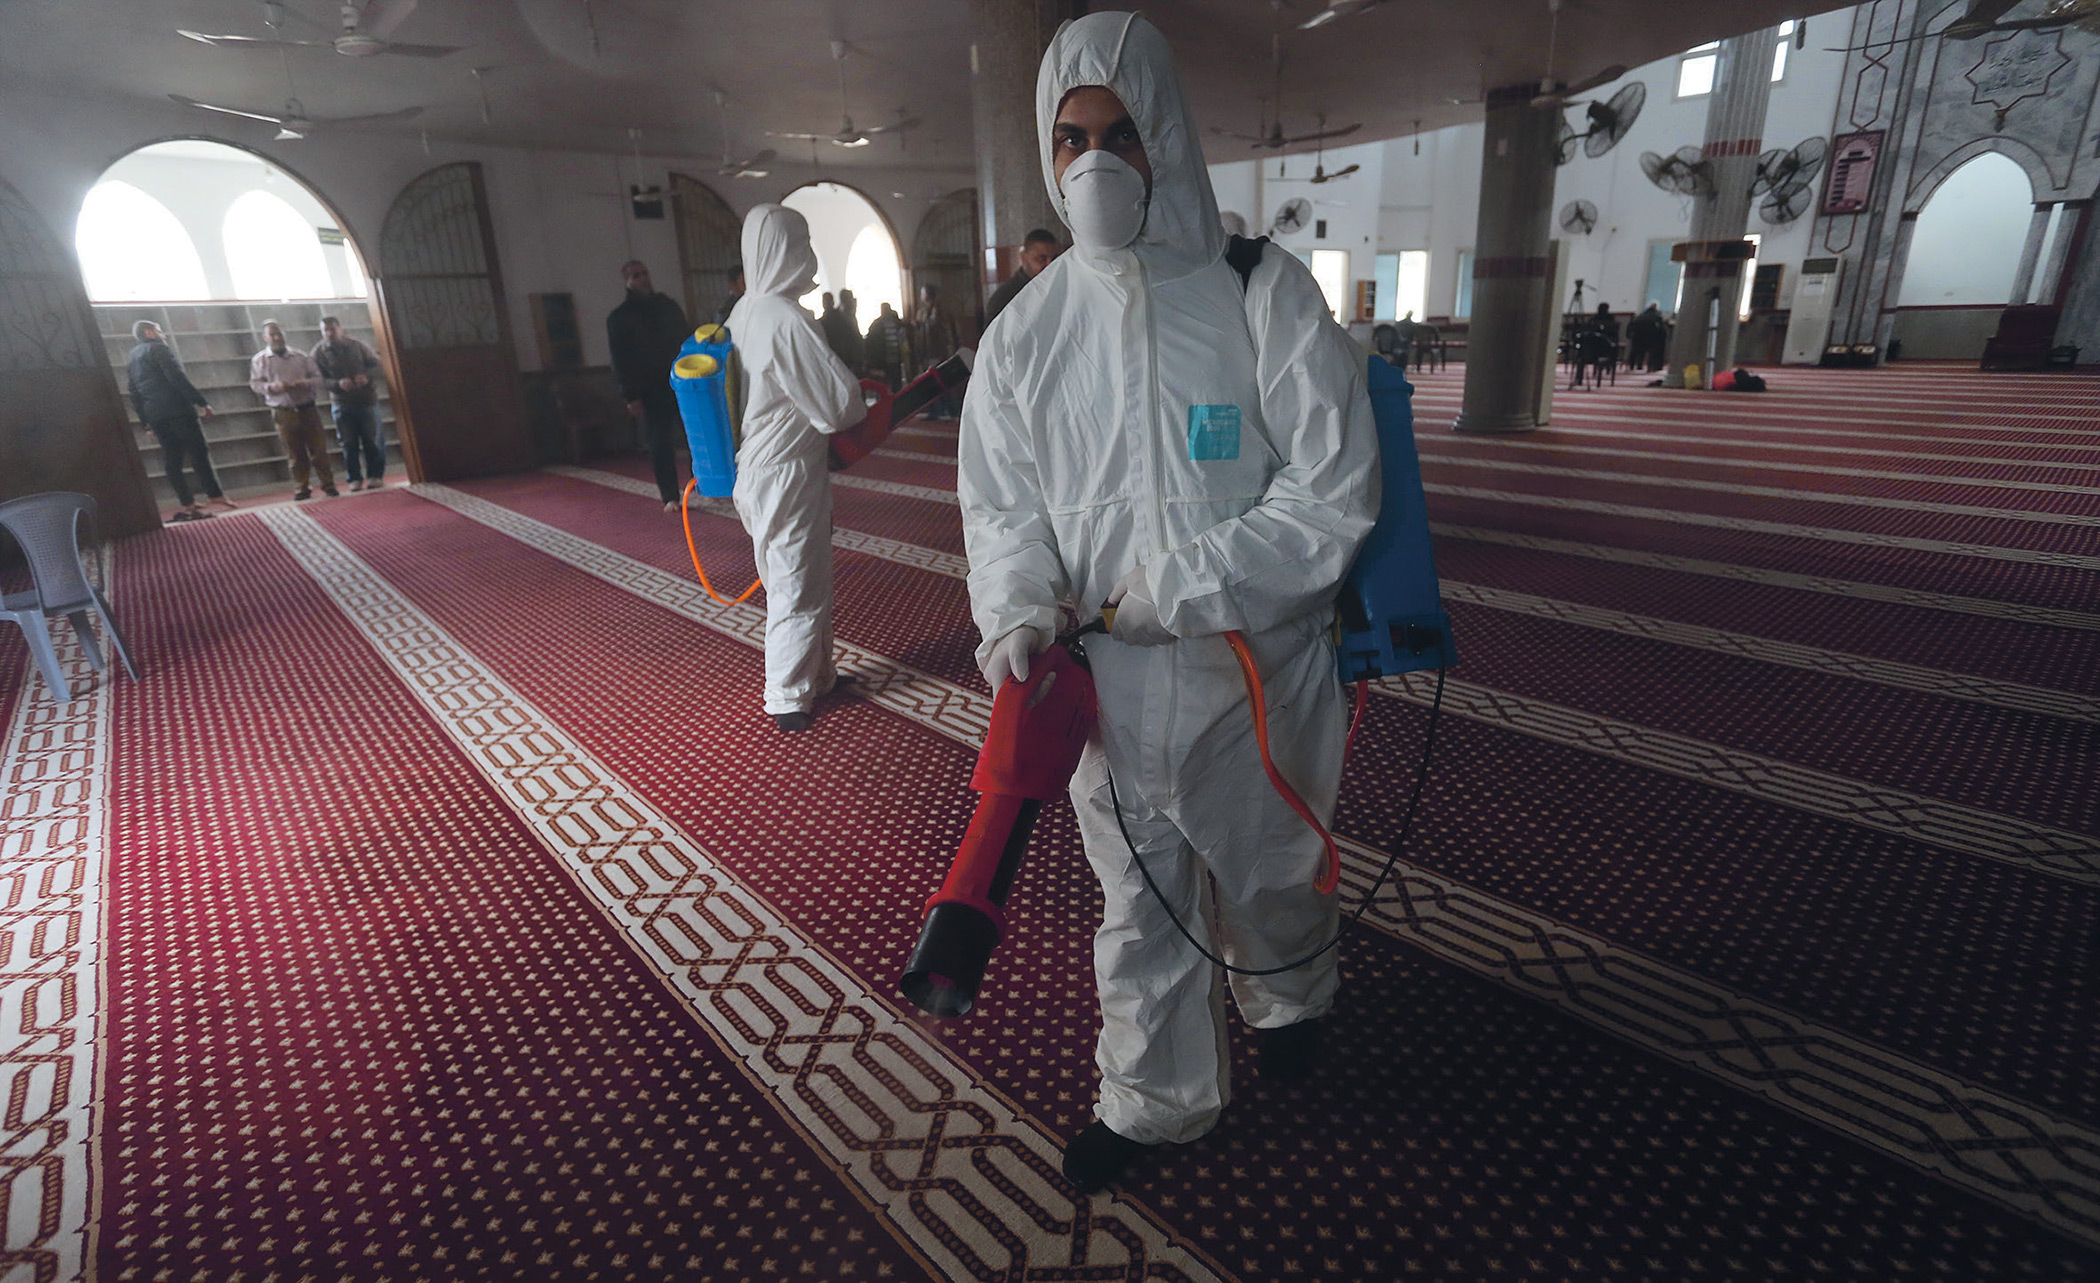 Exit denied: Palestinian workers disinfect a mosque as a preventive measure amid fears of the spread of coronavirus, in Gaza, which is under blockade by Israel.